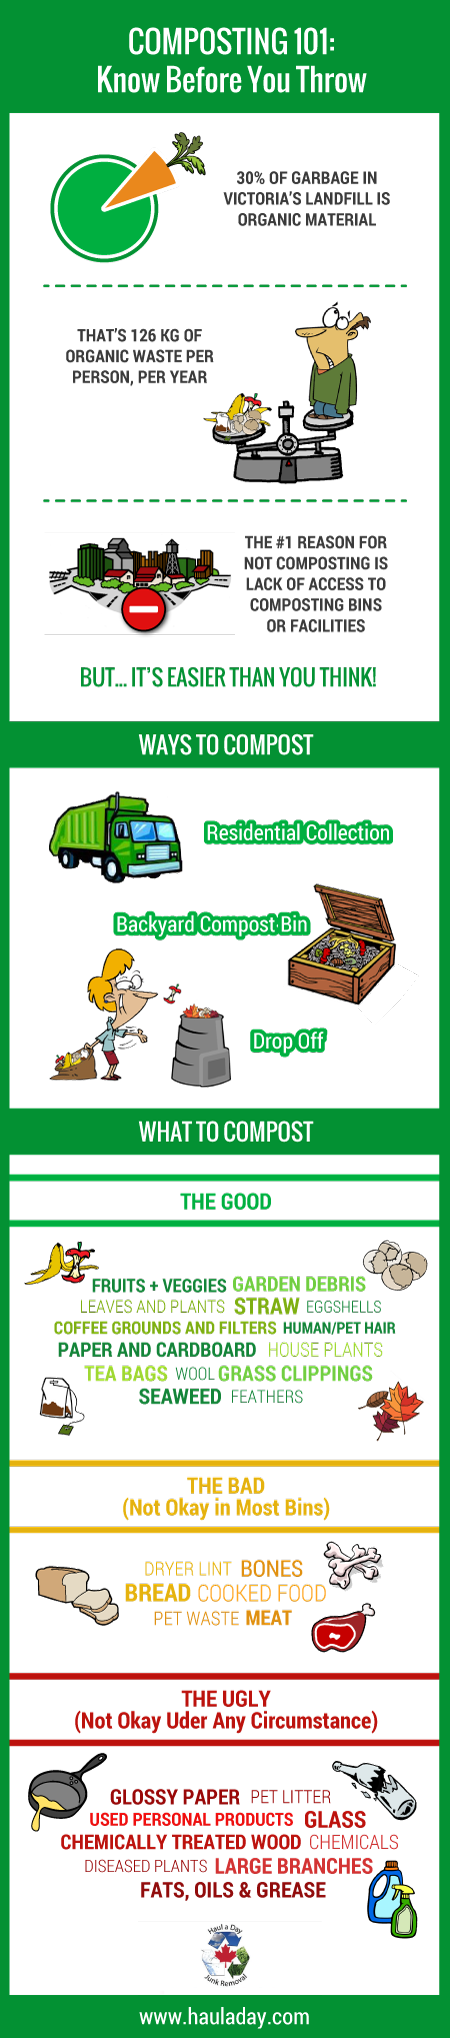 Compost-Infographic